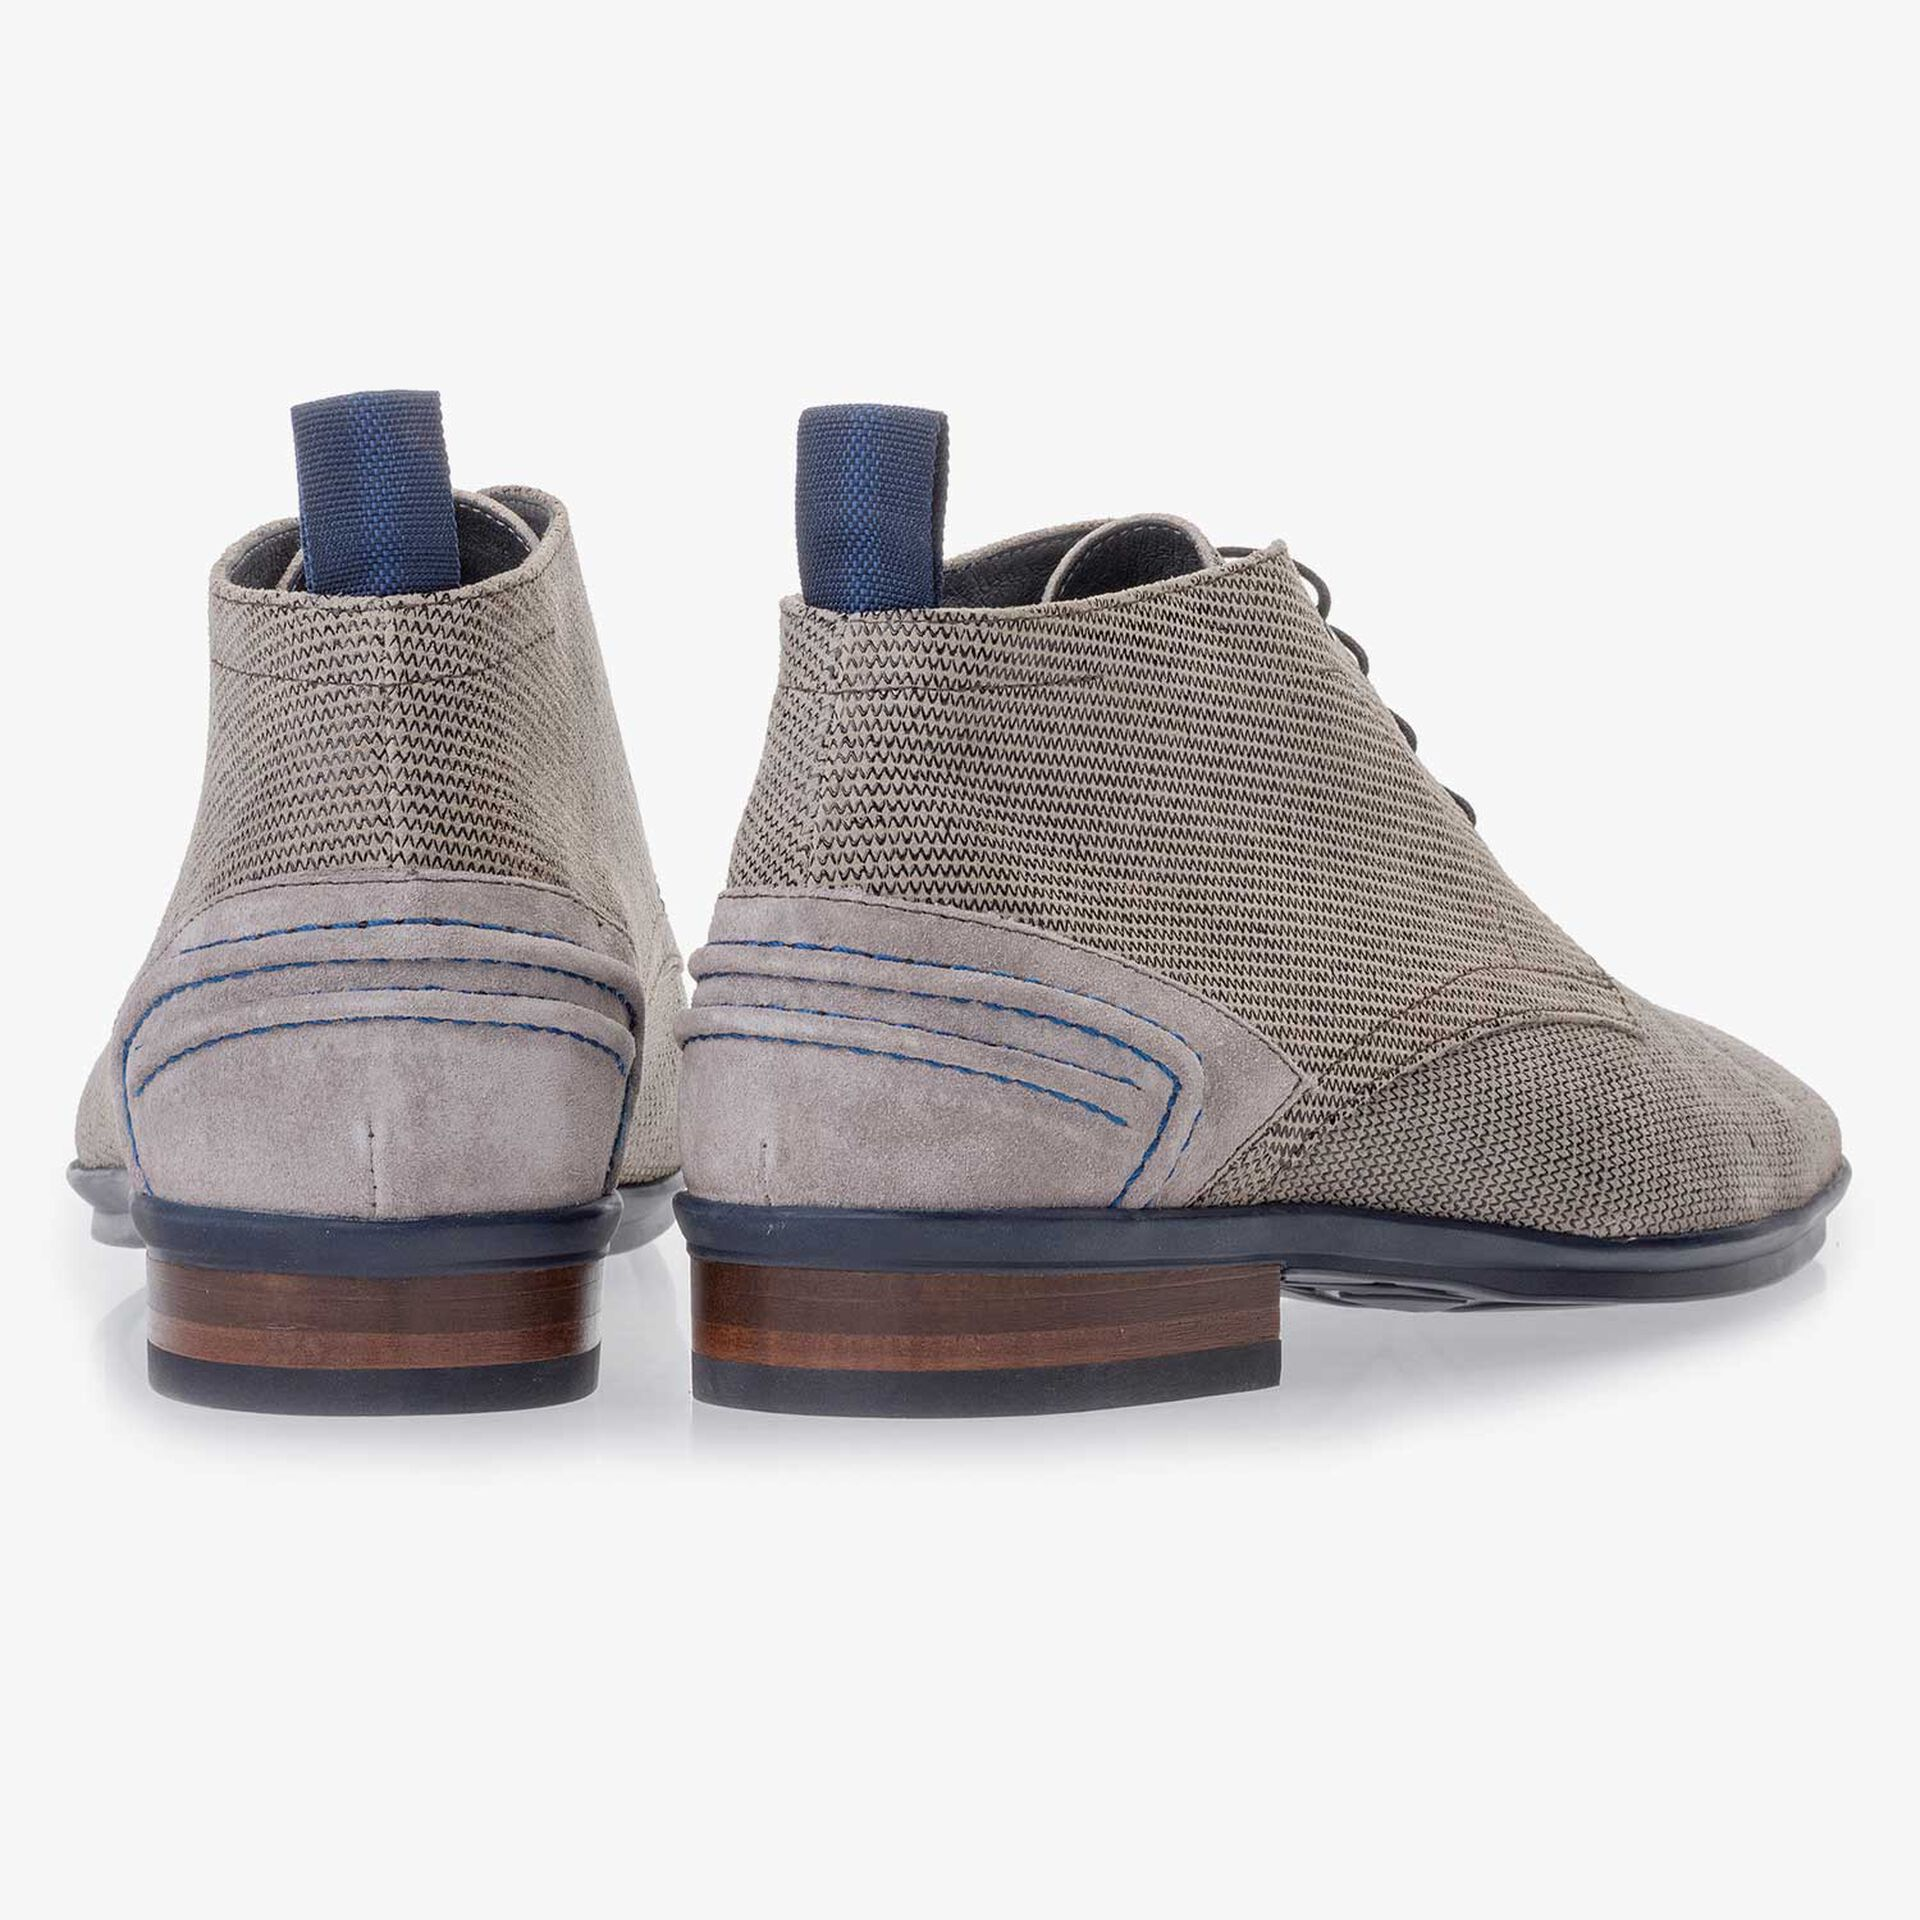 Sand-coloured suede leather lace boot